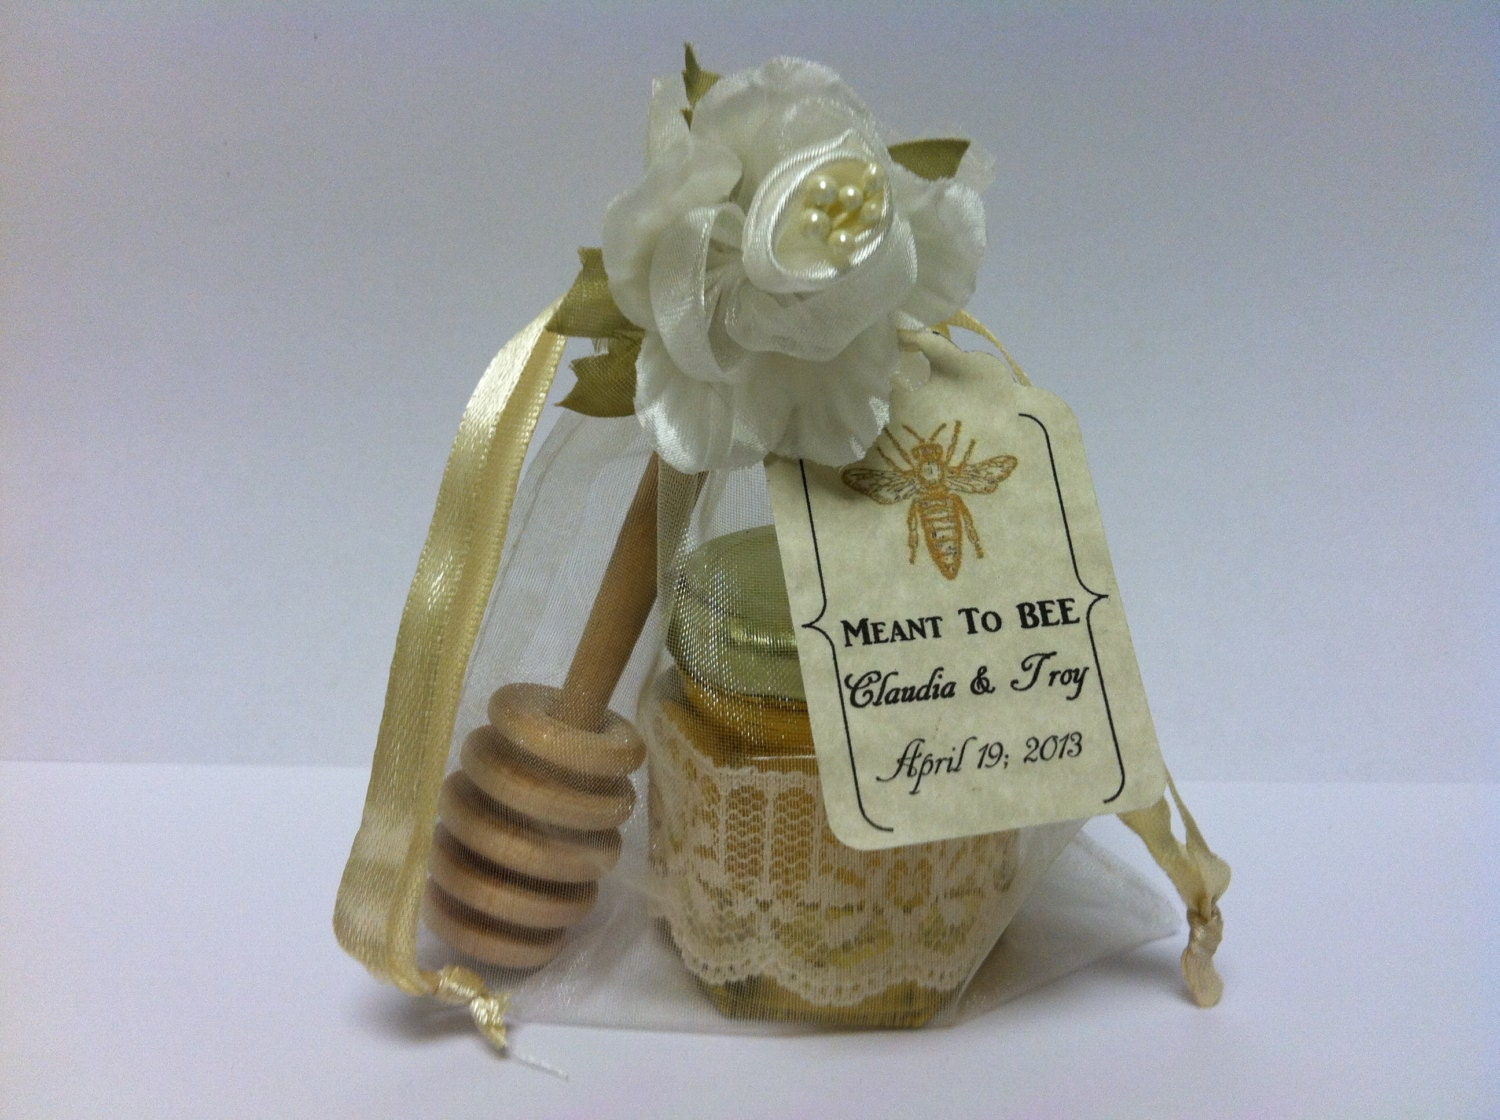 Meant to bee shabby chic victorian wedding tea party by for Victorian tea party favors